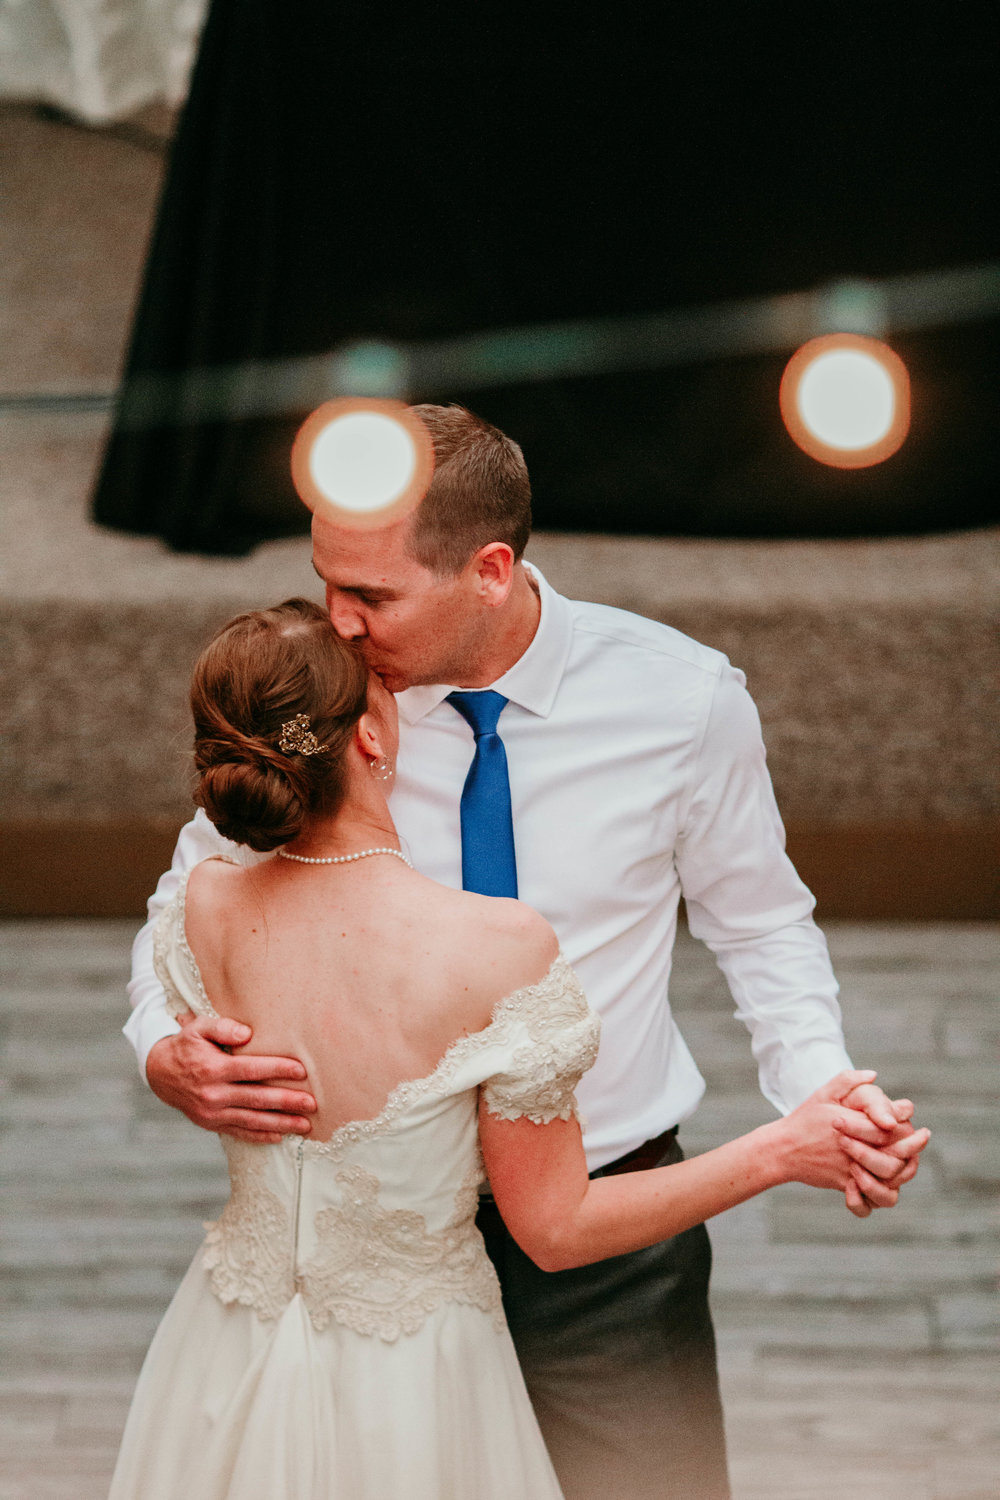 Bert & Lauren's North Kansas City Spring Wedding | Hannahill Photography | Raleigh Durham Photographer | North Carolina Wedding Photography | Family Photographer | Wedding photographer | Groom kisses brides forehead in their first dance